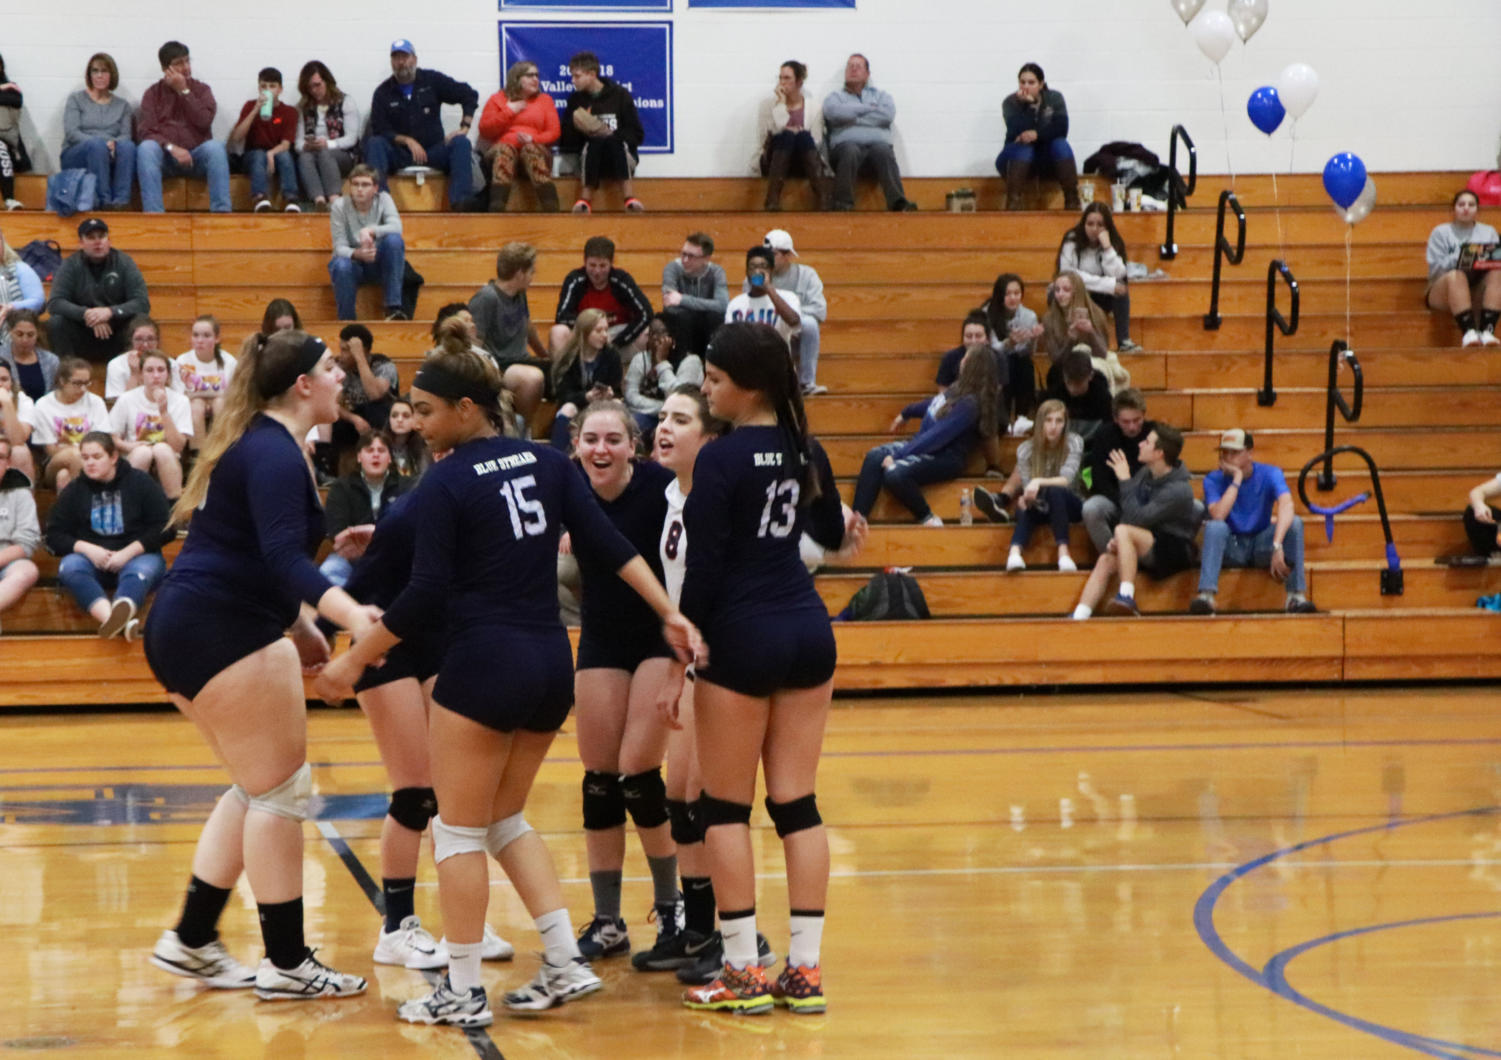 The+Streaks+celebrate+a+kill+in+the+first+set.+The+Wildcats+took+the+first+set+25-13.+